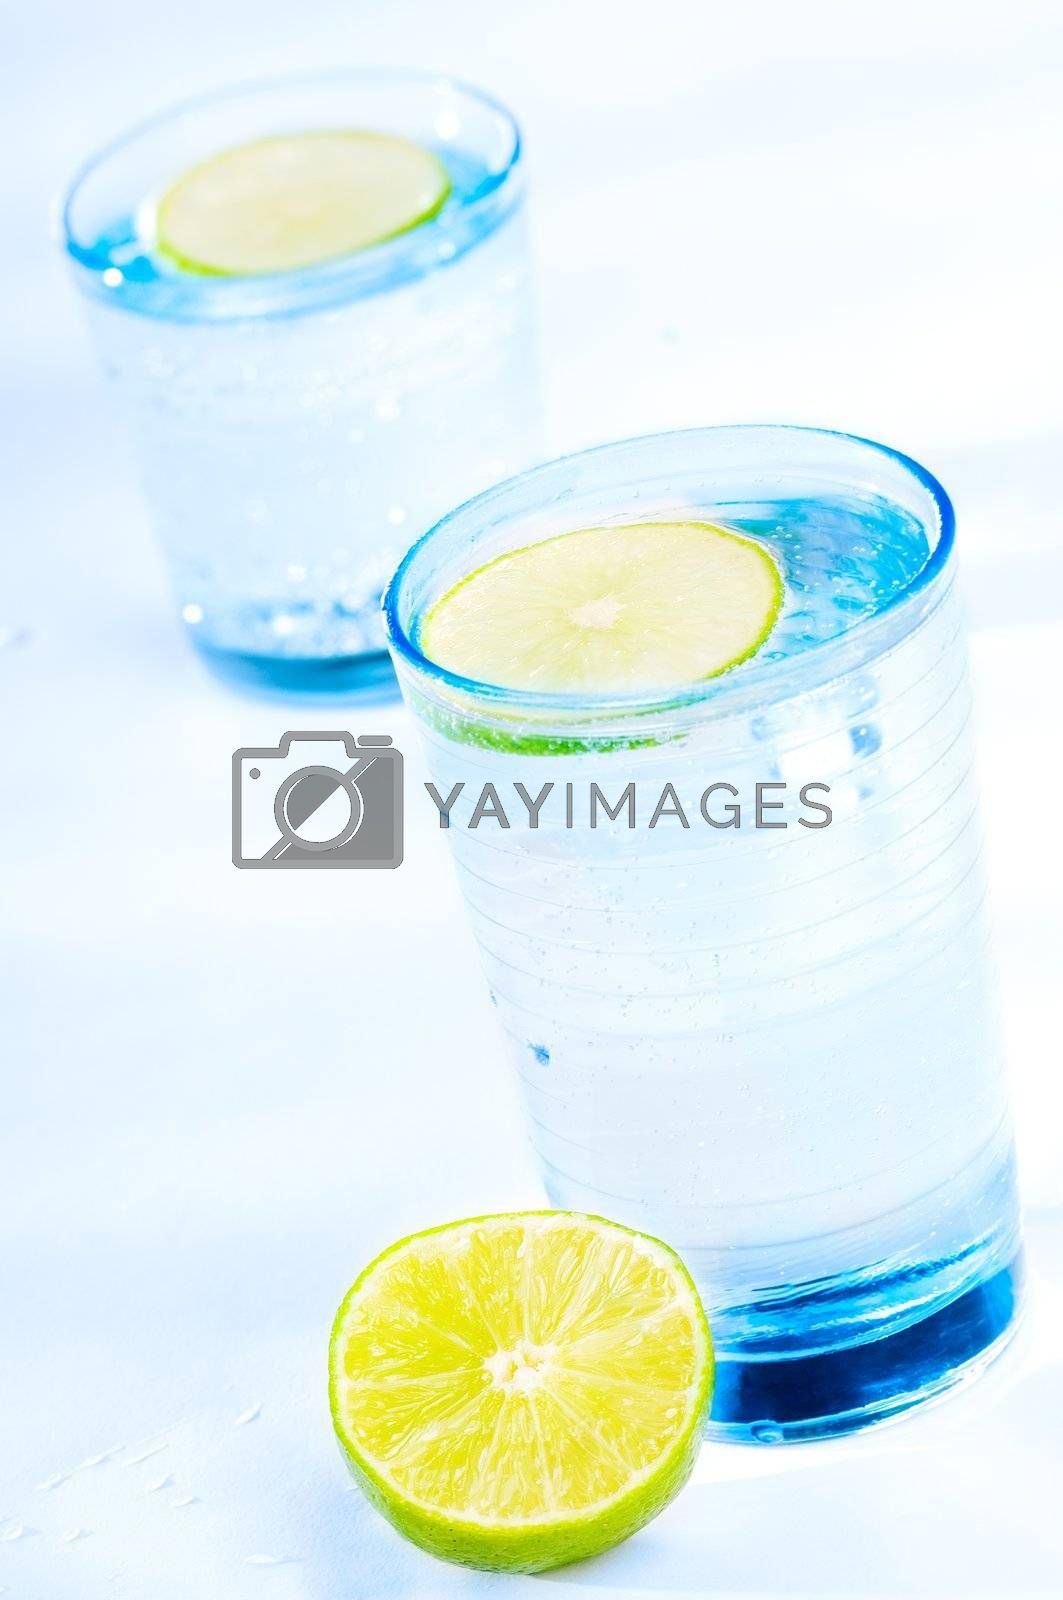 Cool and refresching drink with a slice of lime